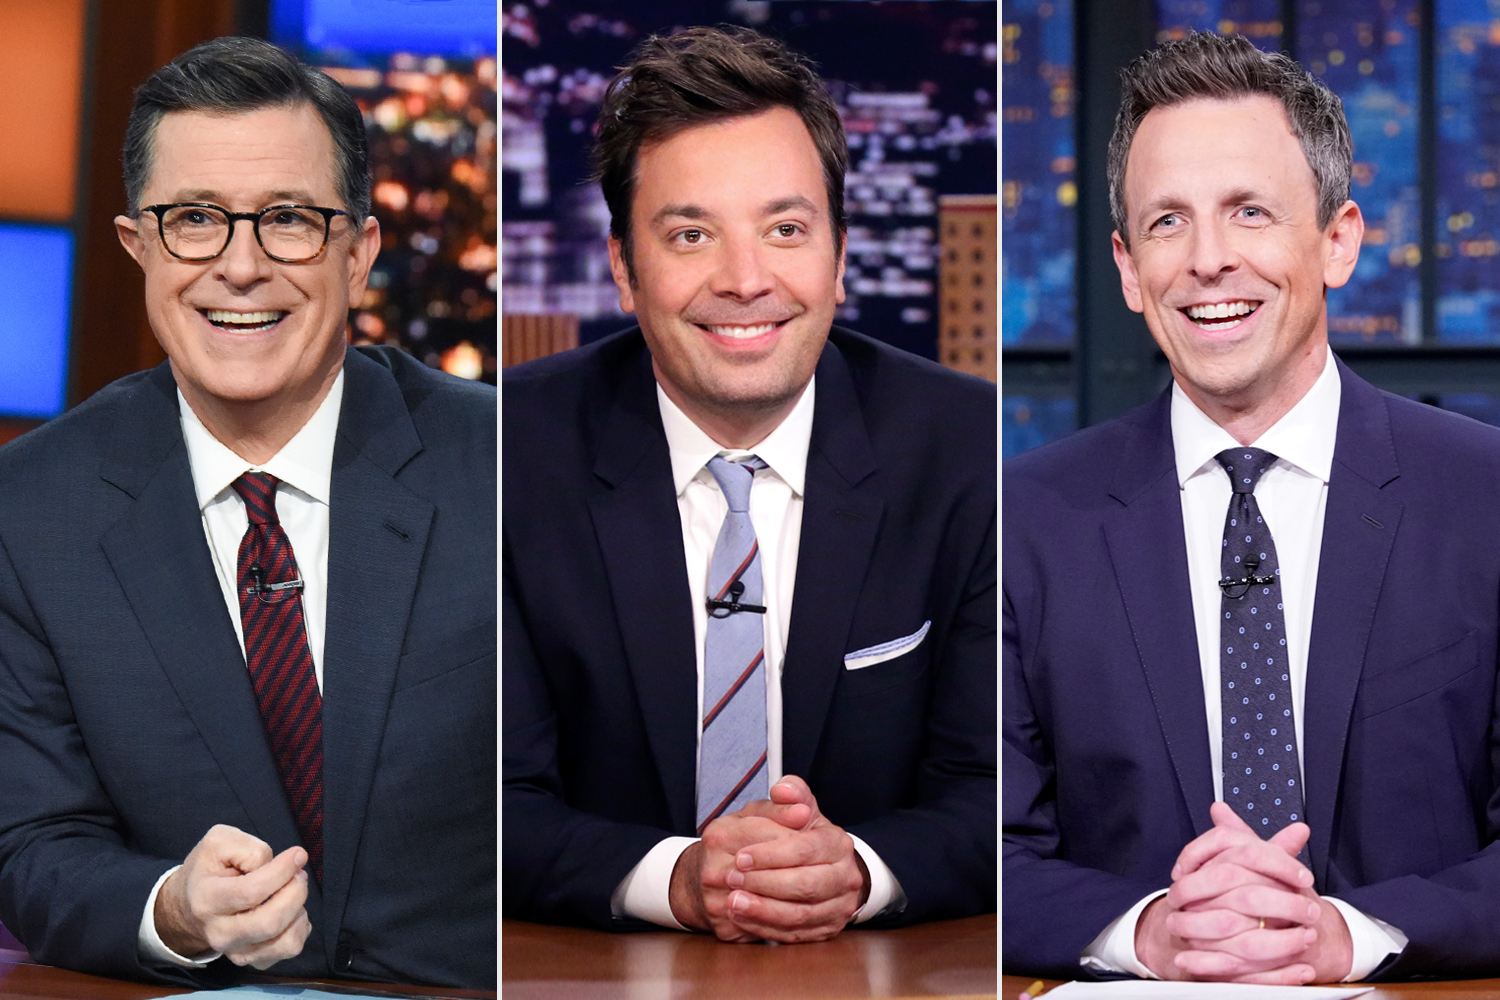 Stephen Colbert; Jimmy Fallon; Seth Meyers